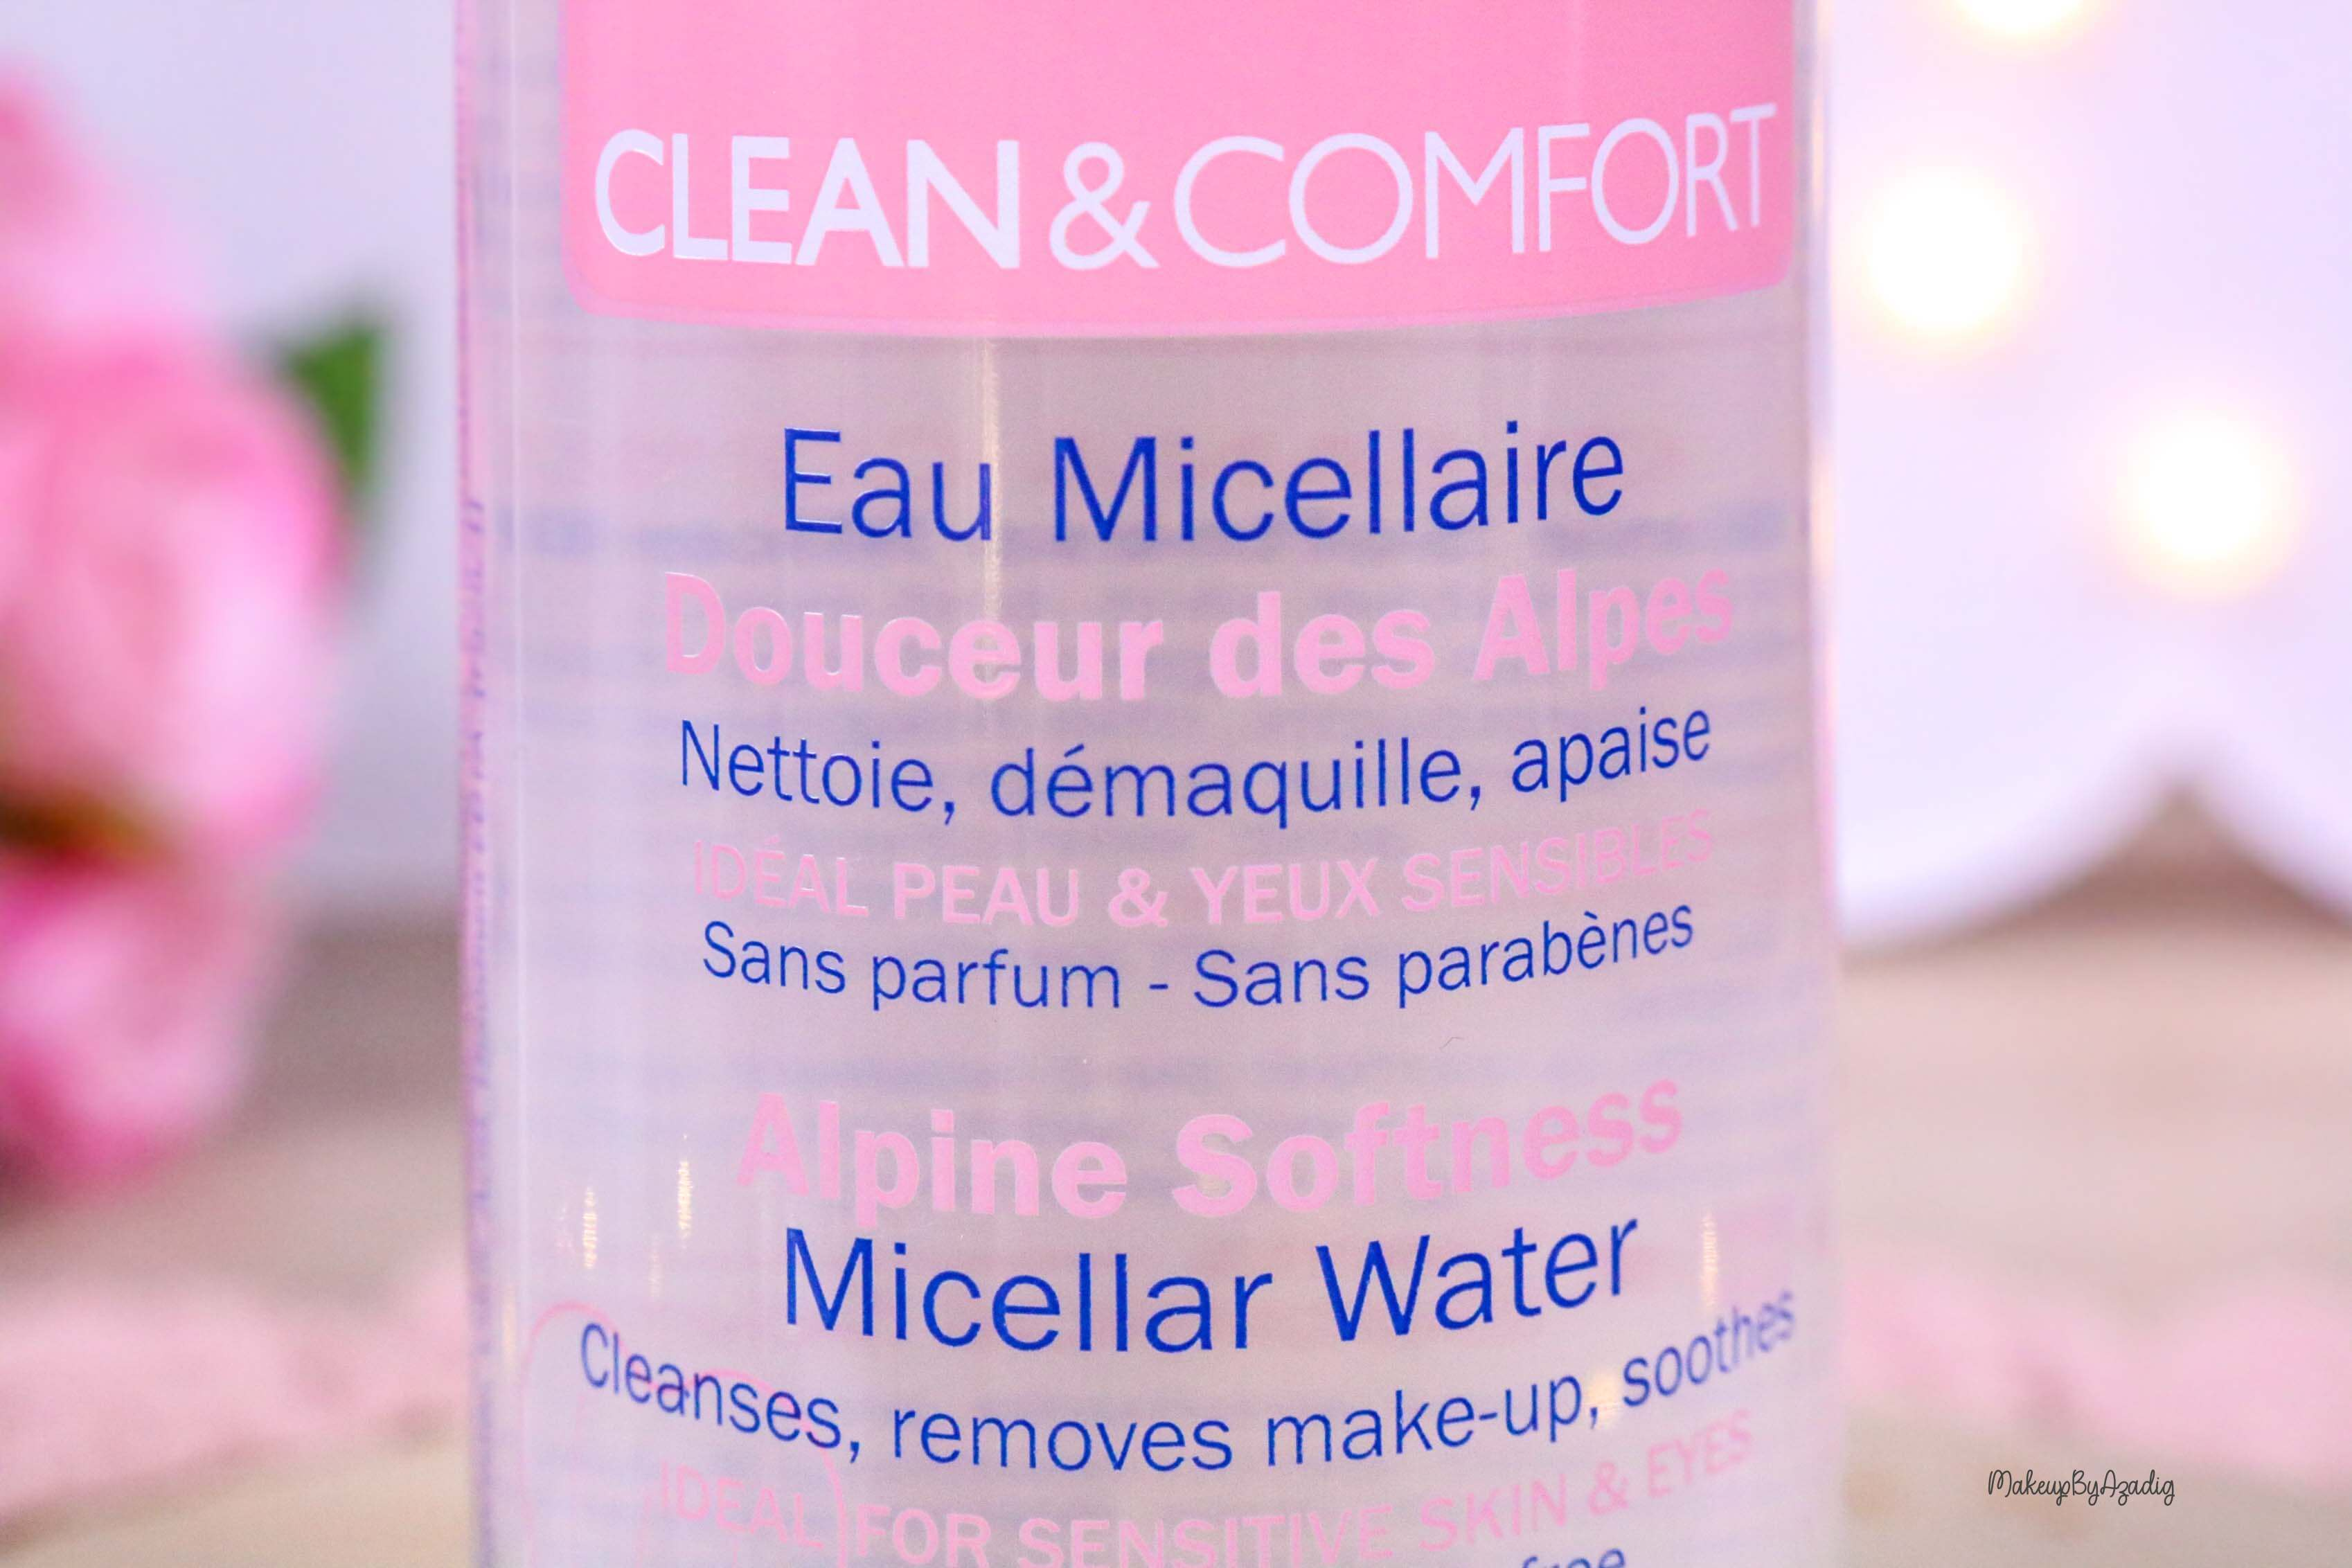 revue-routine-demaquillage-soin-confort-mavala-suisse-clean-lotion-tonique-lait-eau-micellaire-makeupbyazadig-alpes